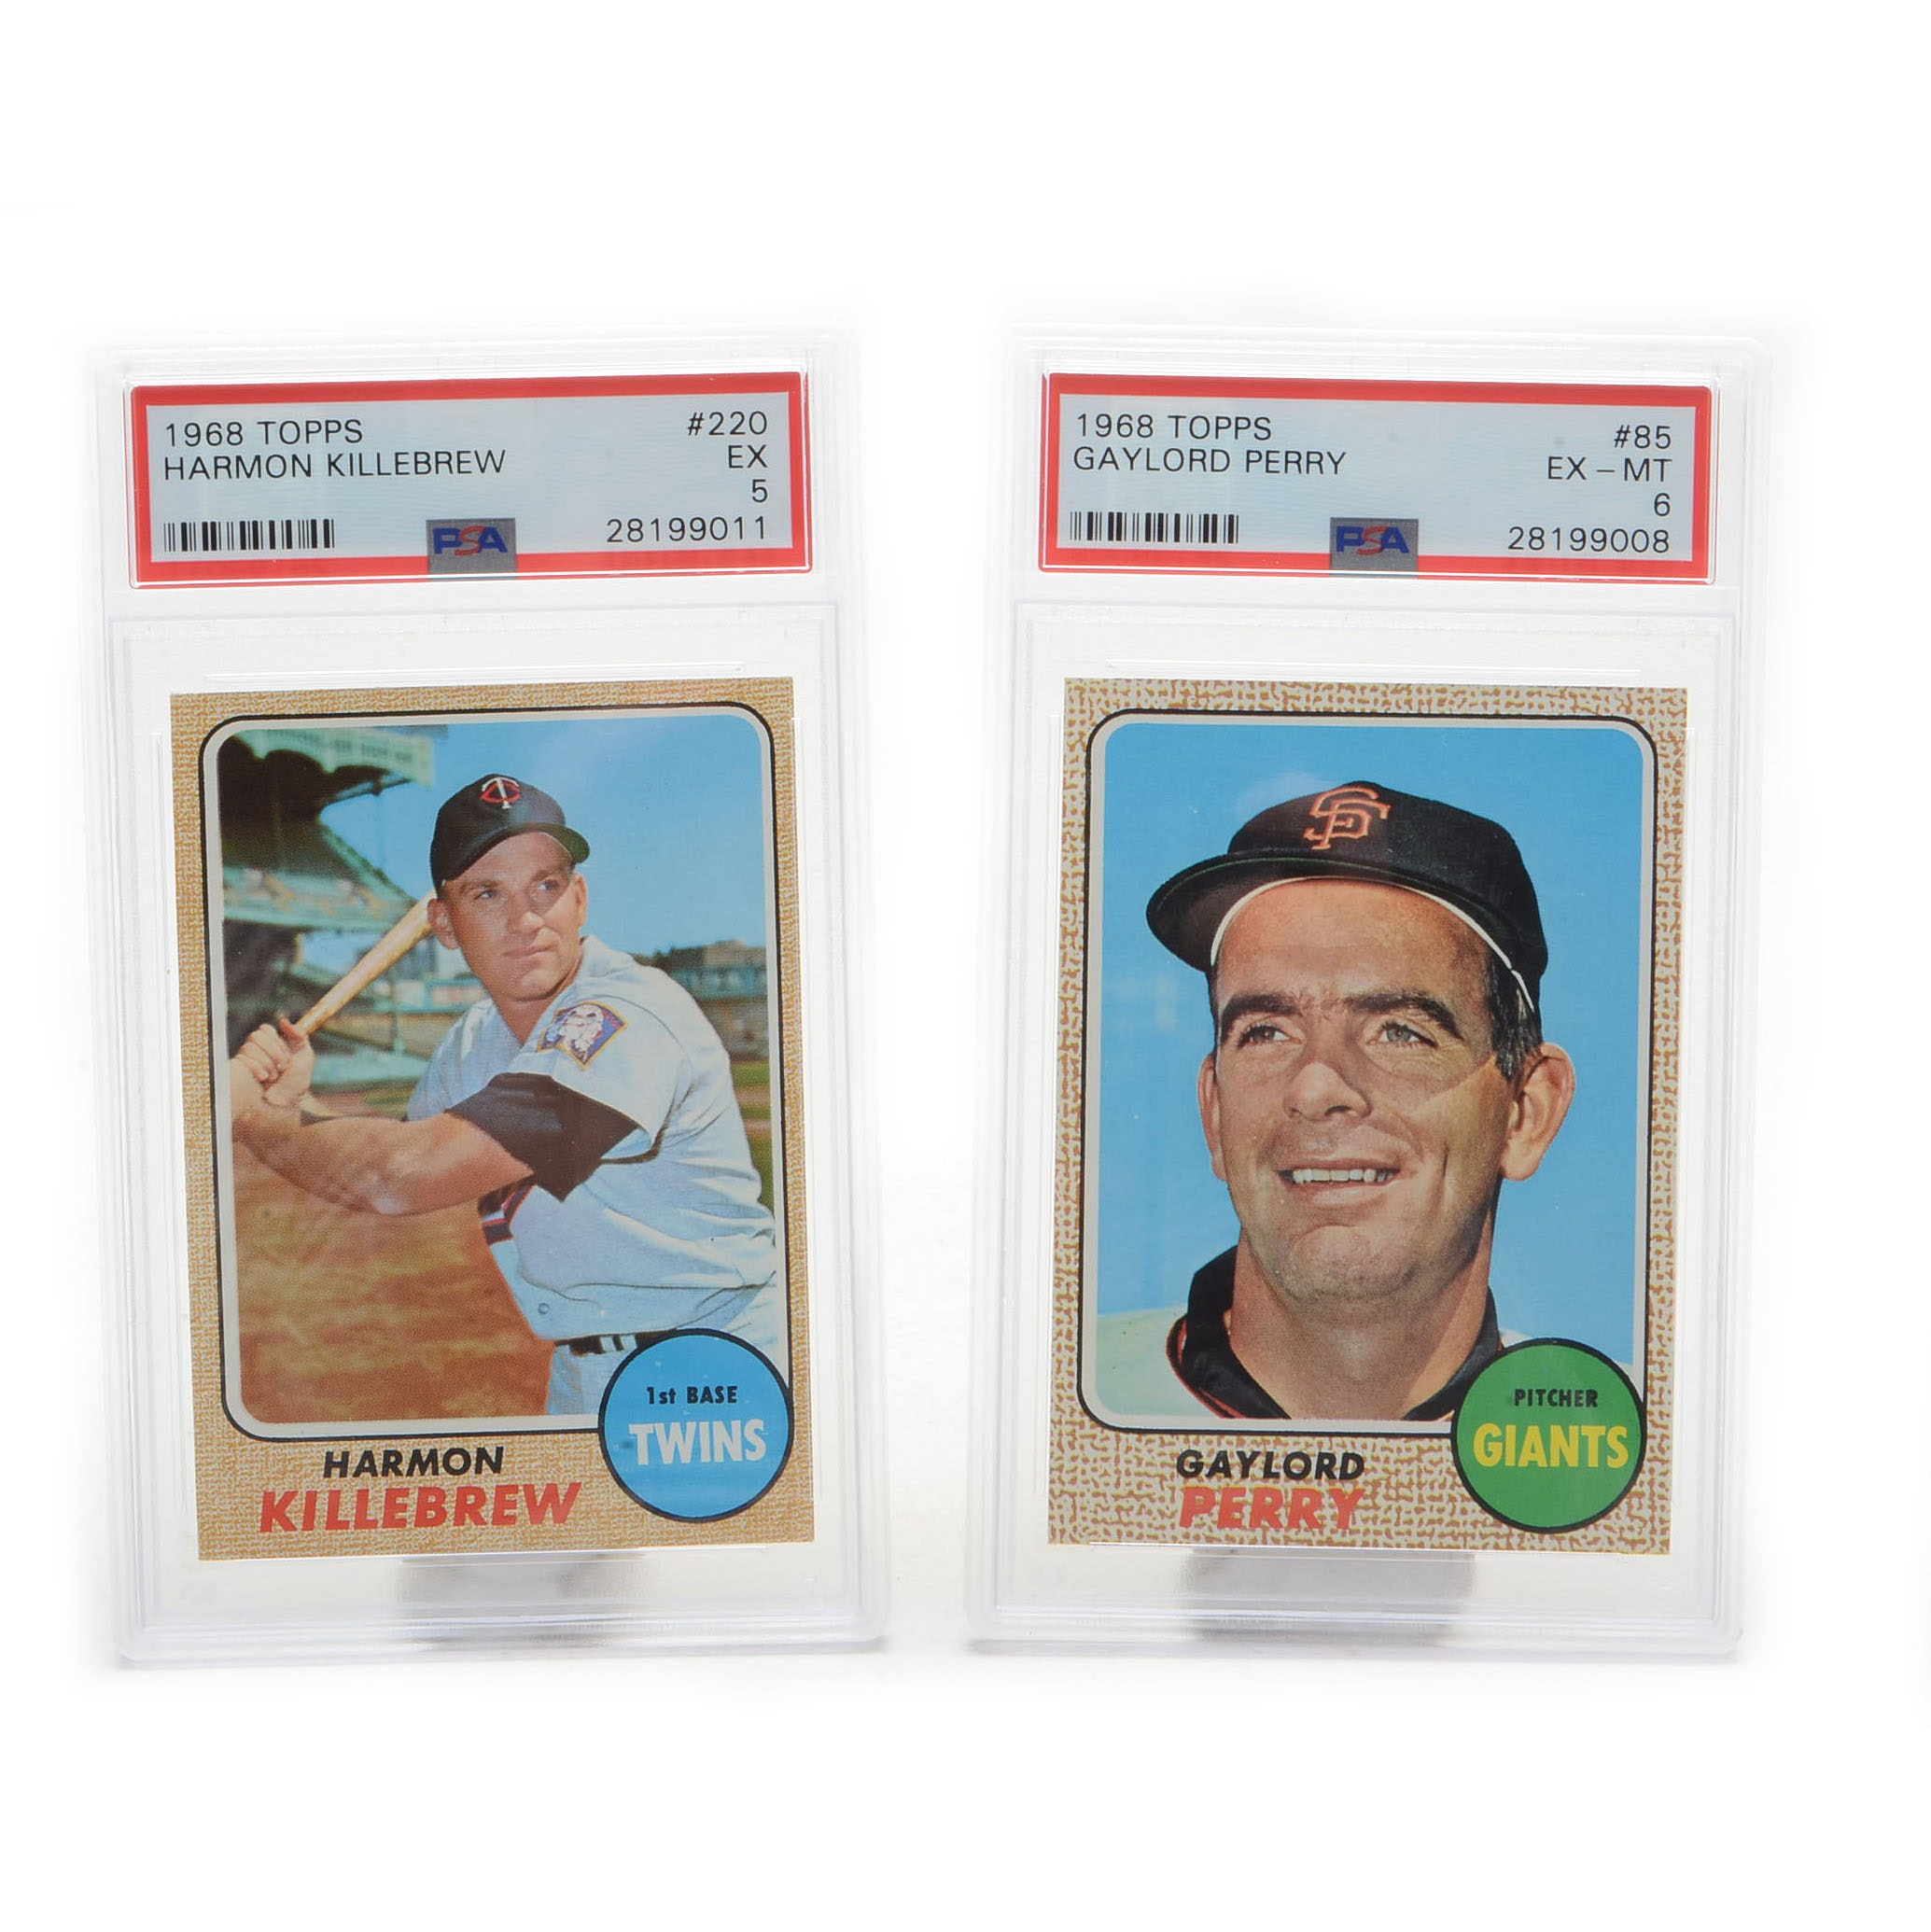 1968 Topps Perry and Killebrew PSA Graded Cards